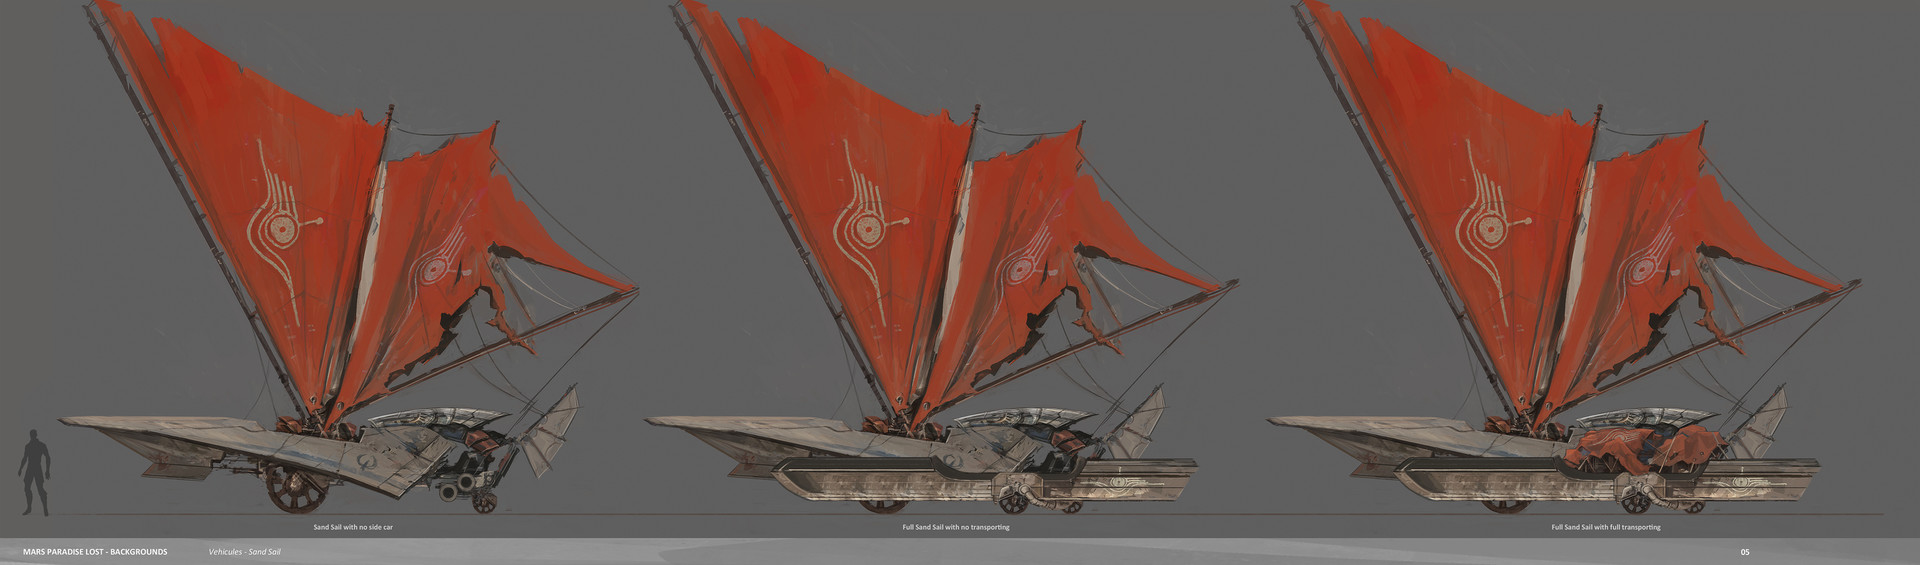 Alexandre chaudret mpl backgrounds vehicules sandsails06